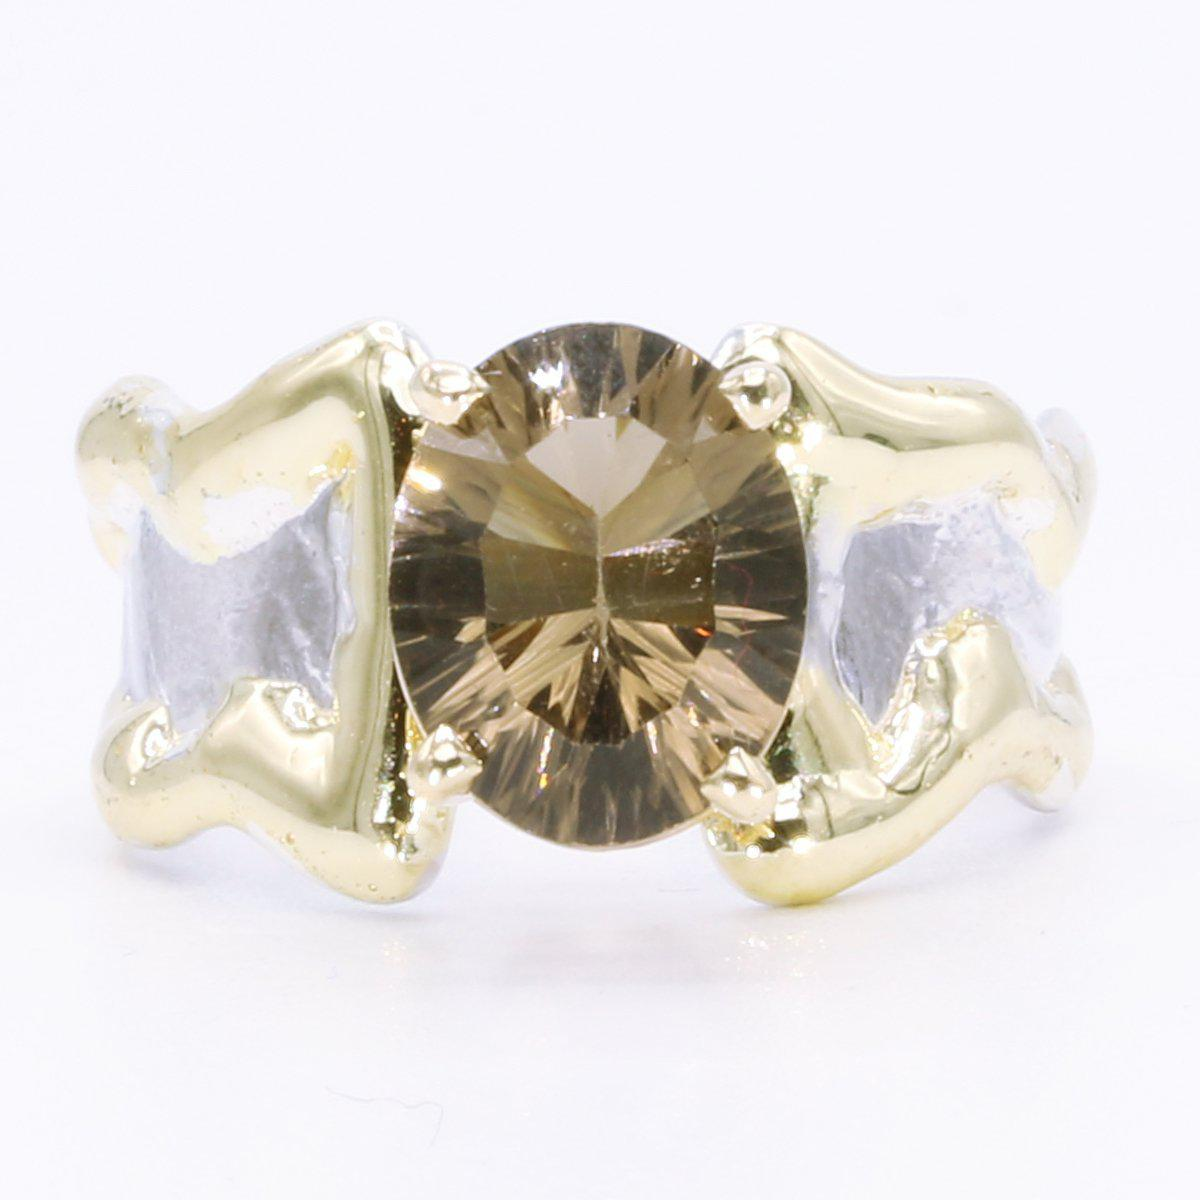 14K Gold & Crystalline Silver Smoky Quartz Ring - 35166-Fusion Designs-Renee Taylor Gallery